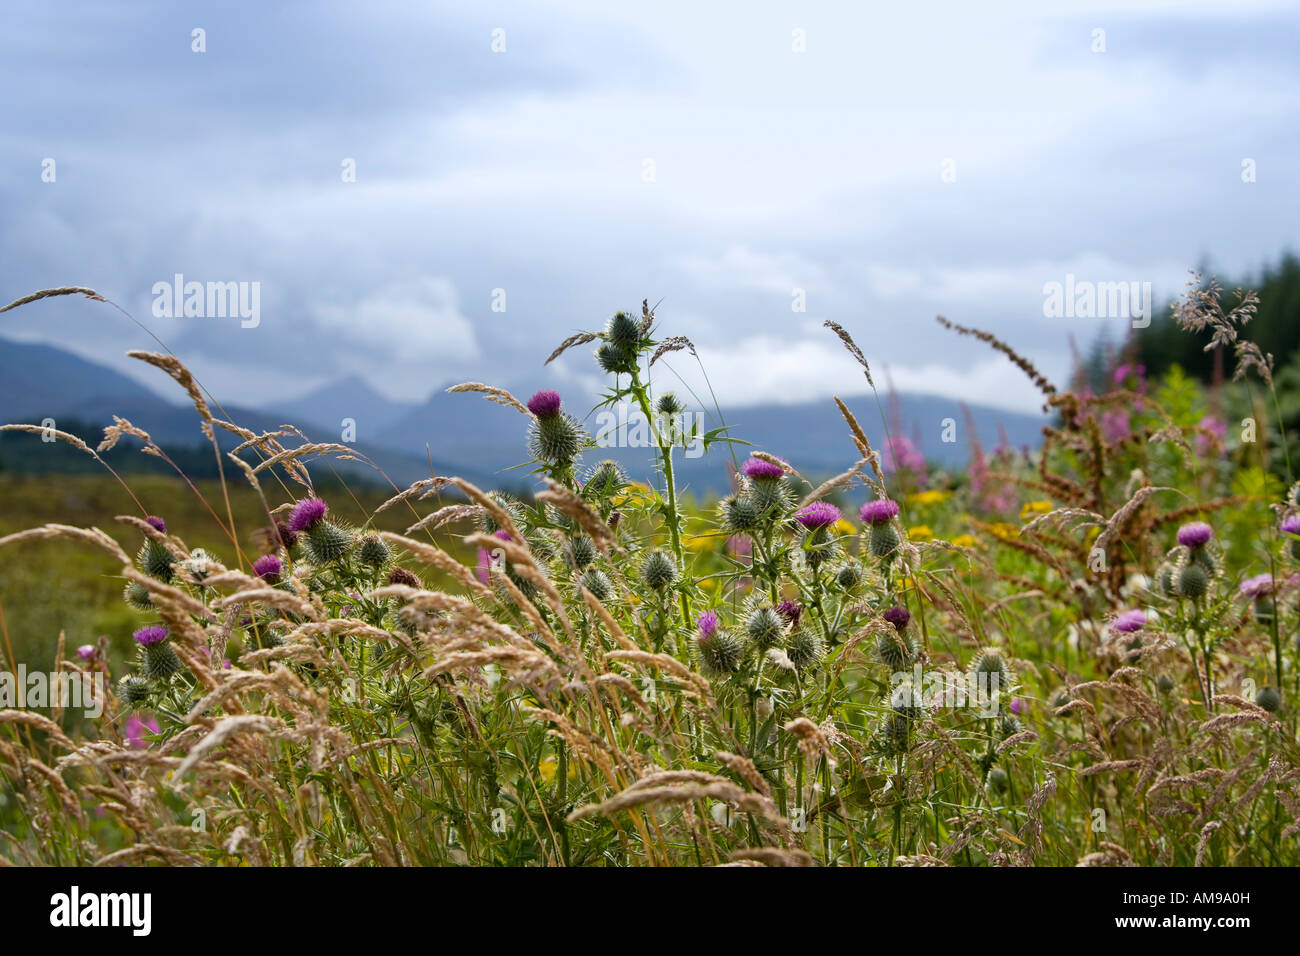 Spear Thistles and Wild Grasses, Highlands, Scotland - Stock Image